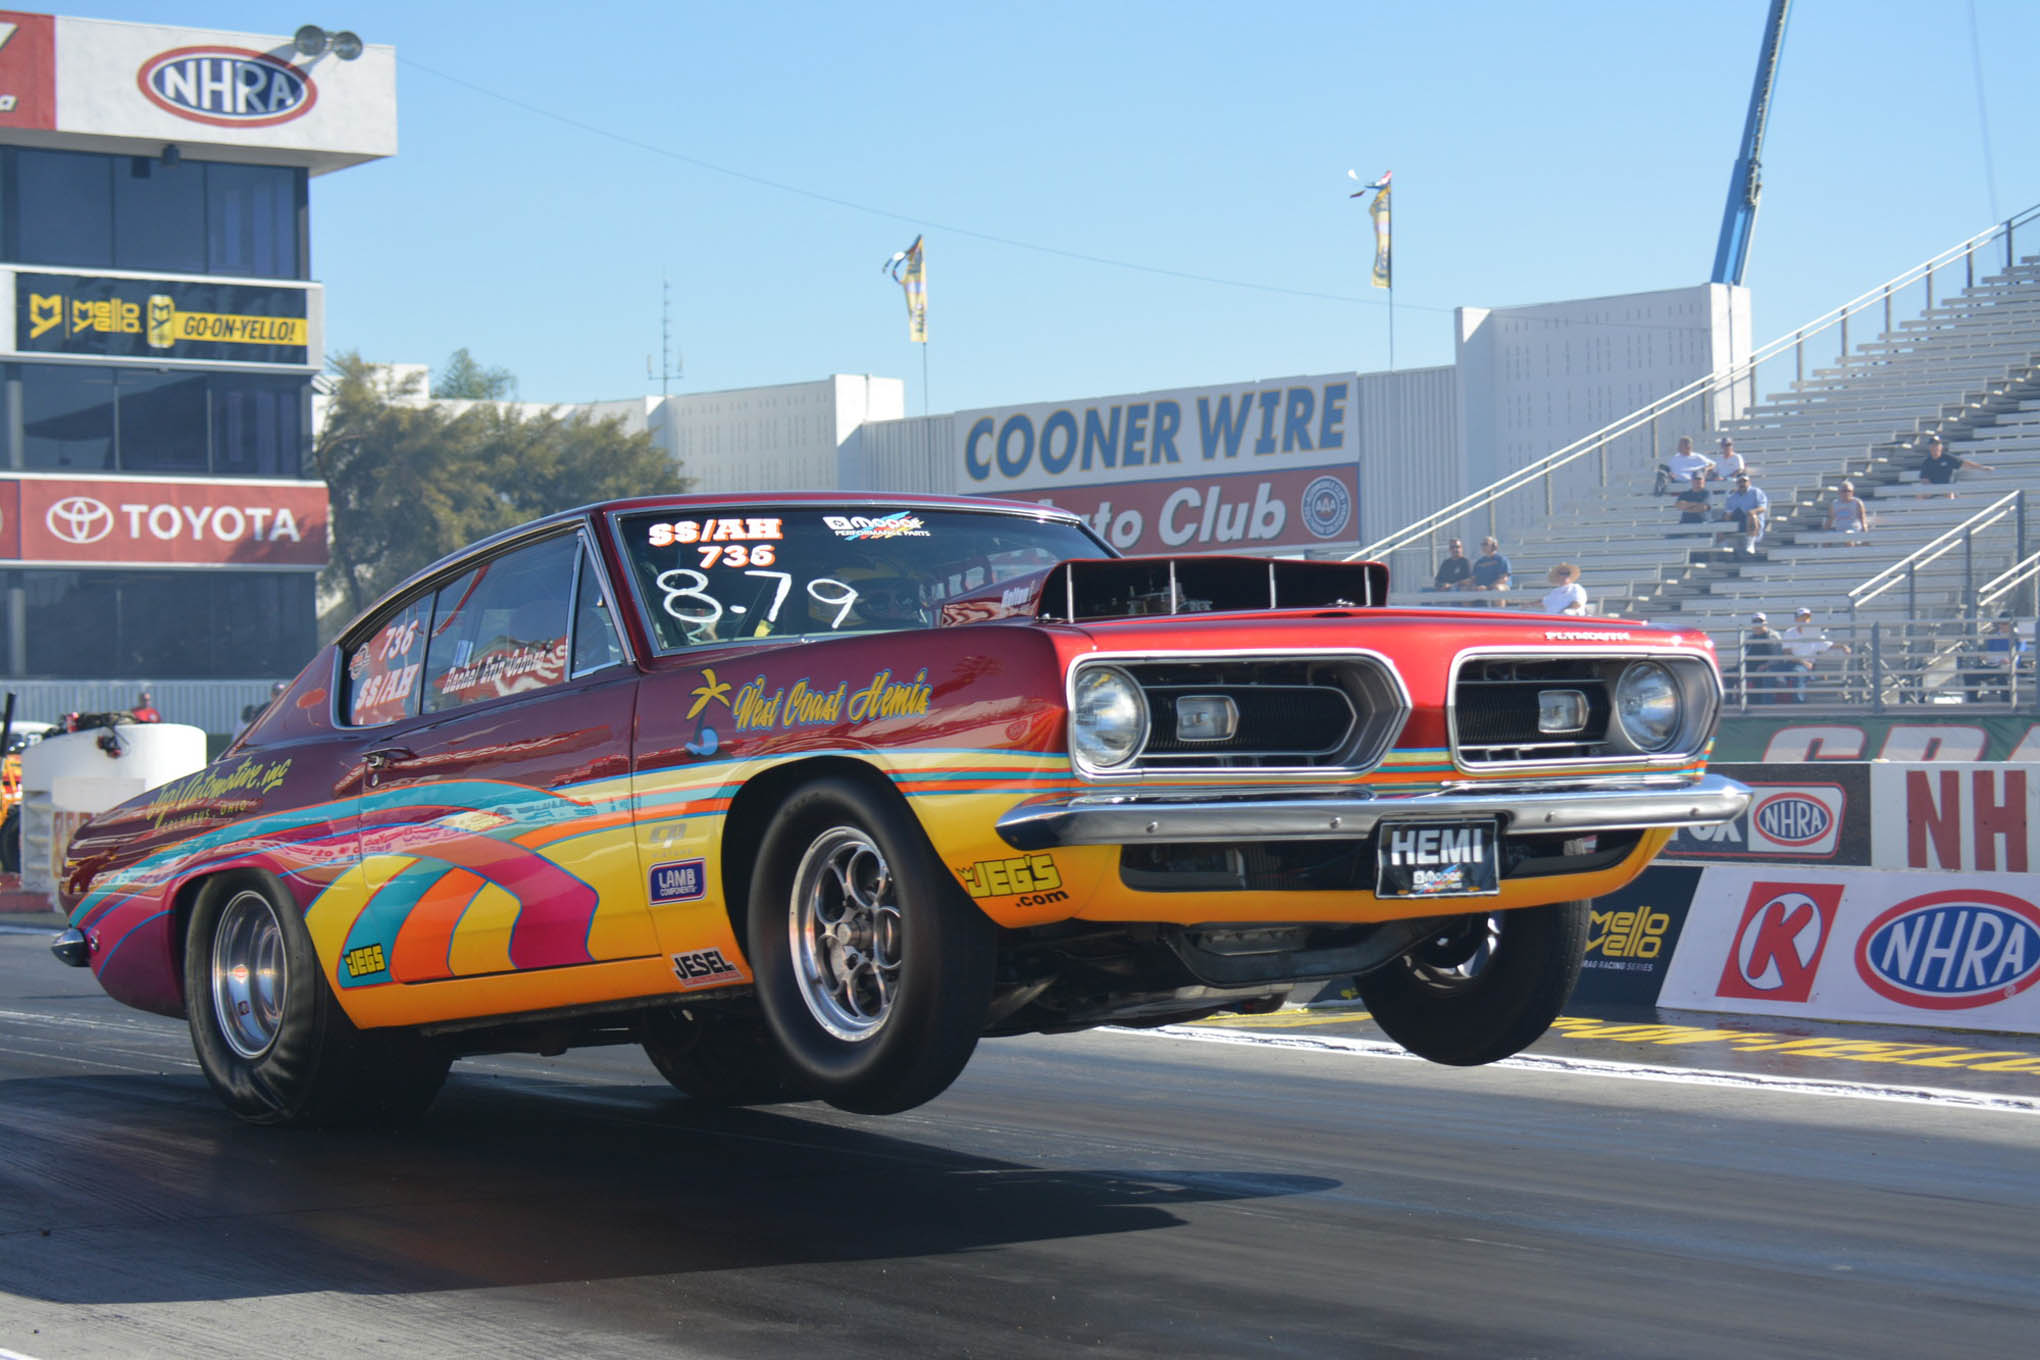 It's not the Winternationals without a '68 Super Stock Hemi Barracuda, and Michael Ogburn's stunning example reinforces how cool these cars are.